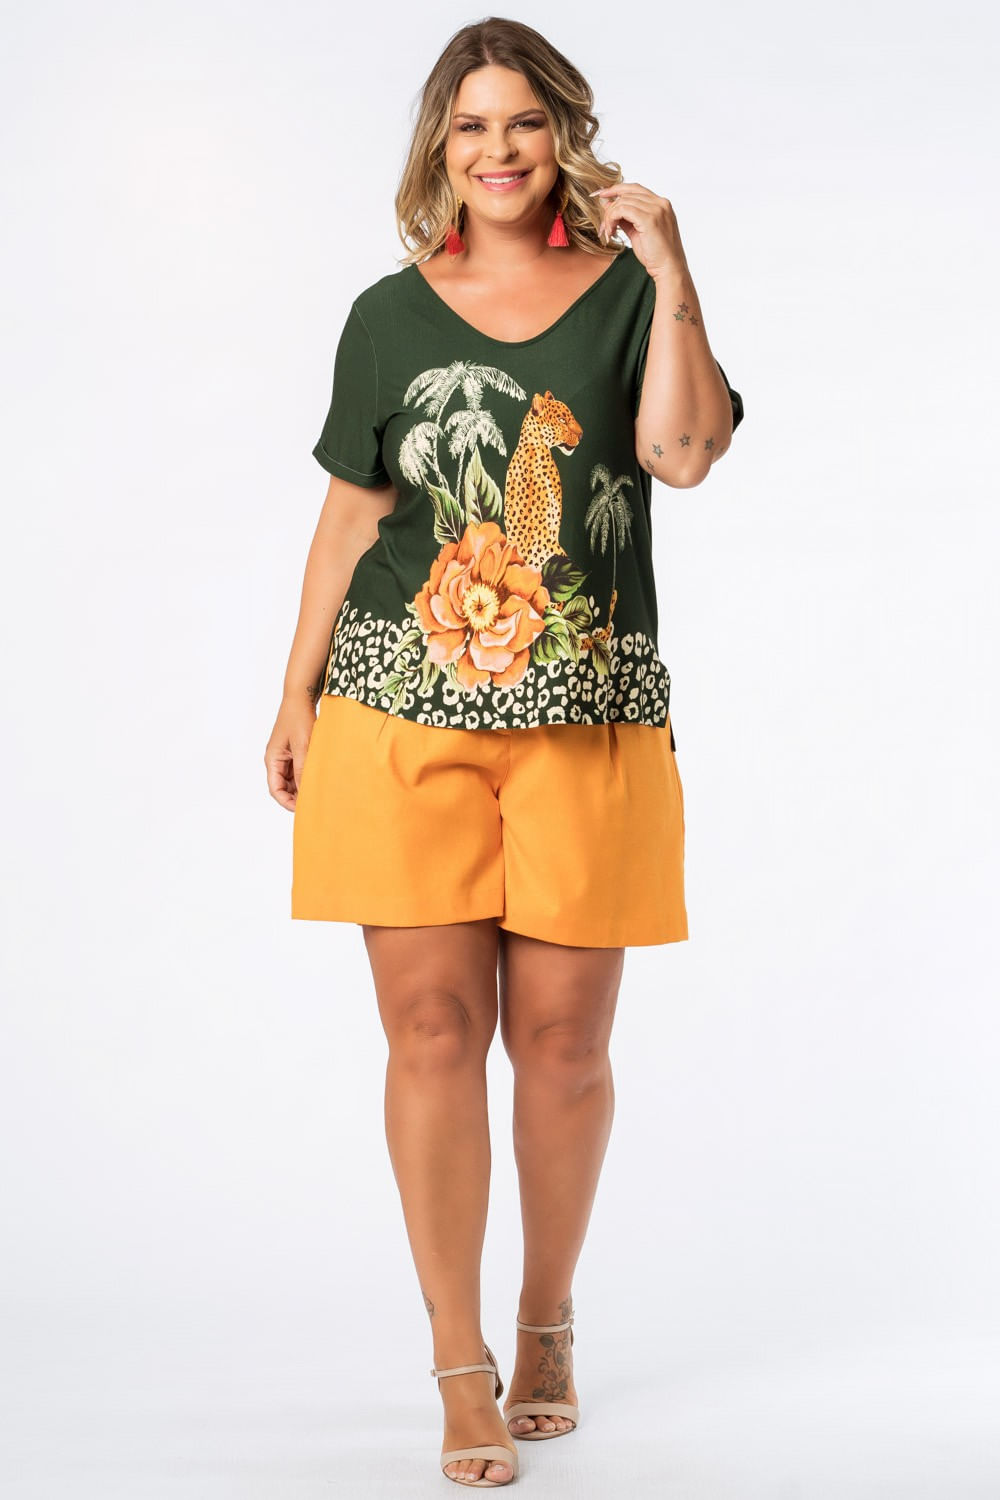 t_shirt_estampada_onca_plus_size_verde_22292_1_20201208153714